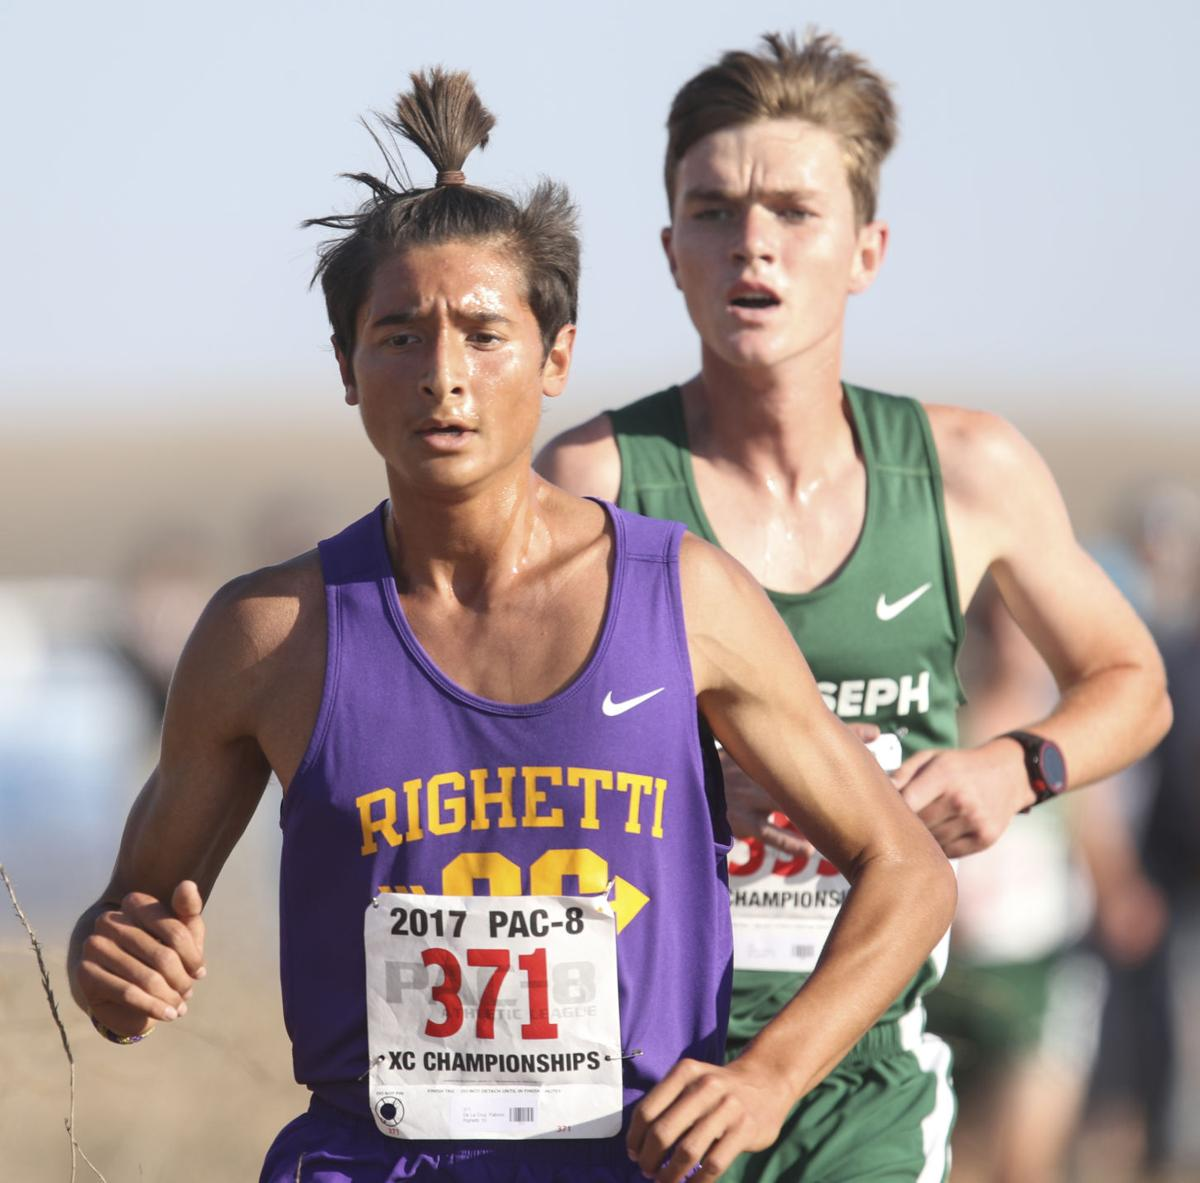 PAC 8 Cross Country Championships